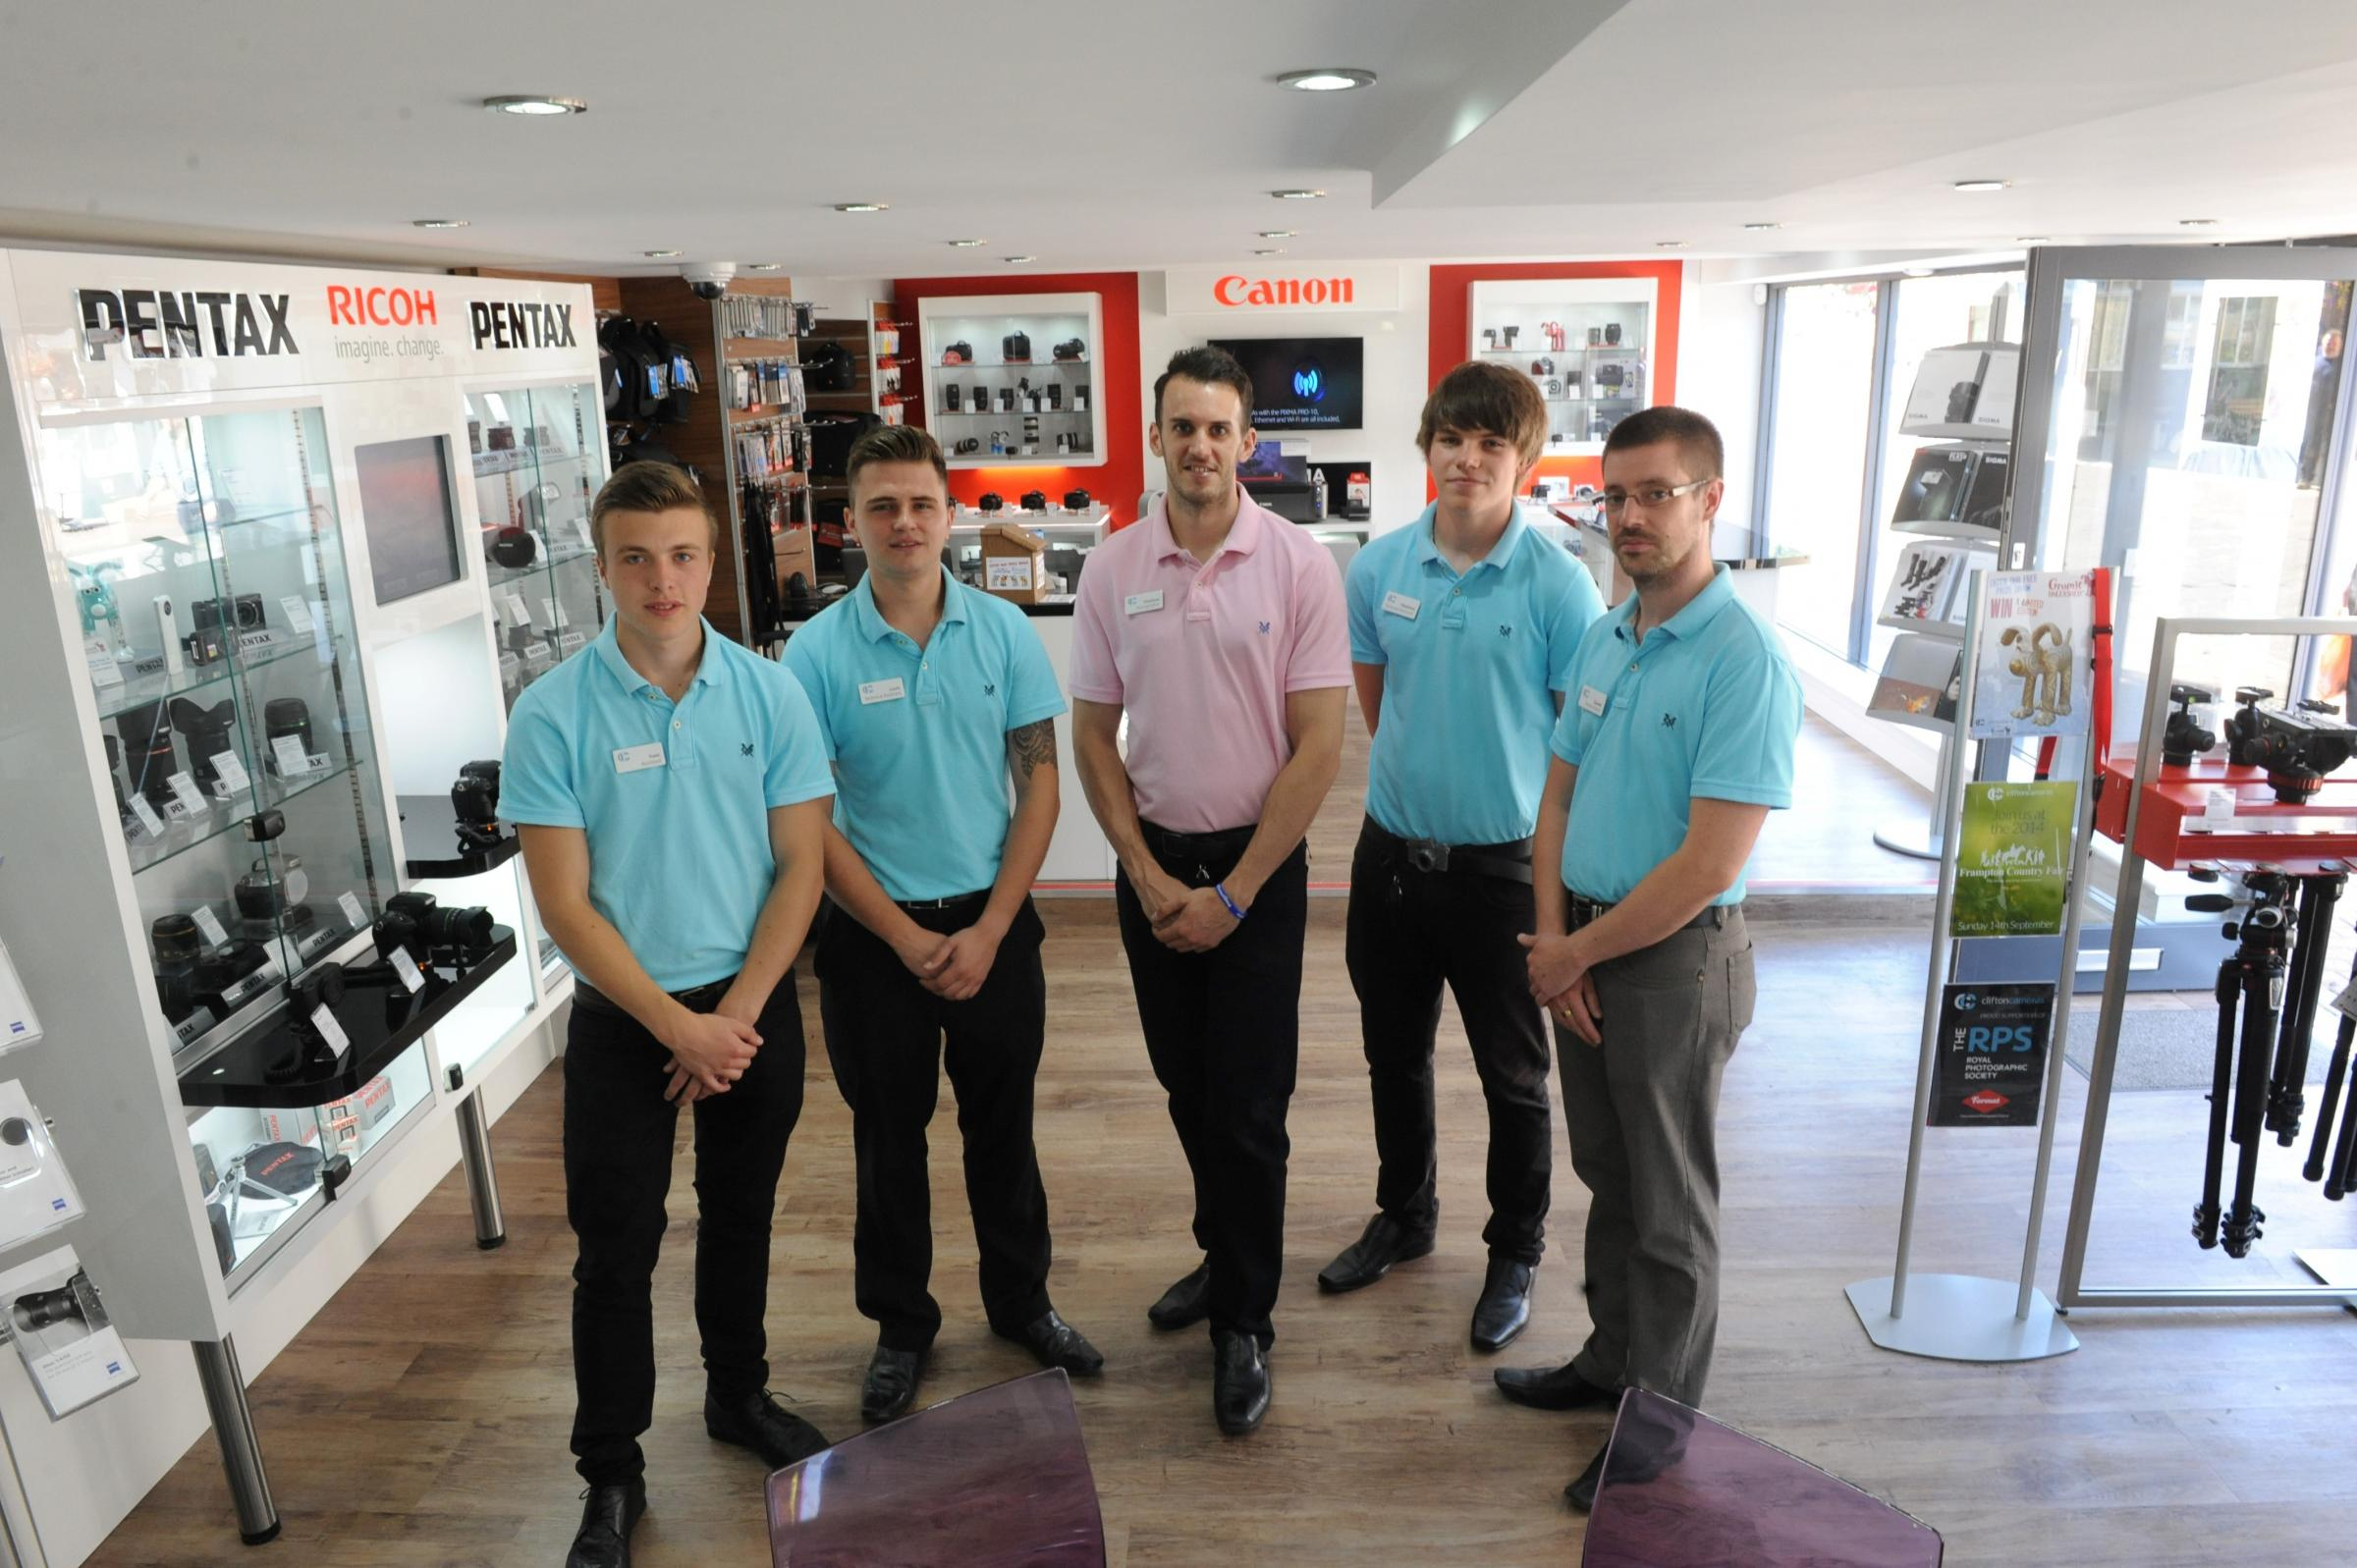 SR_302_001     Staff at Clifton Cameras in Dursley (8700839)